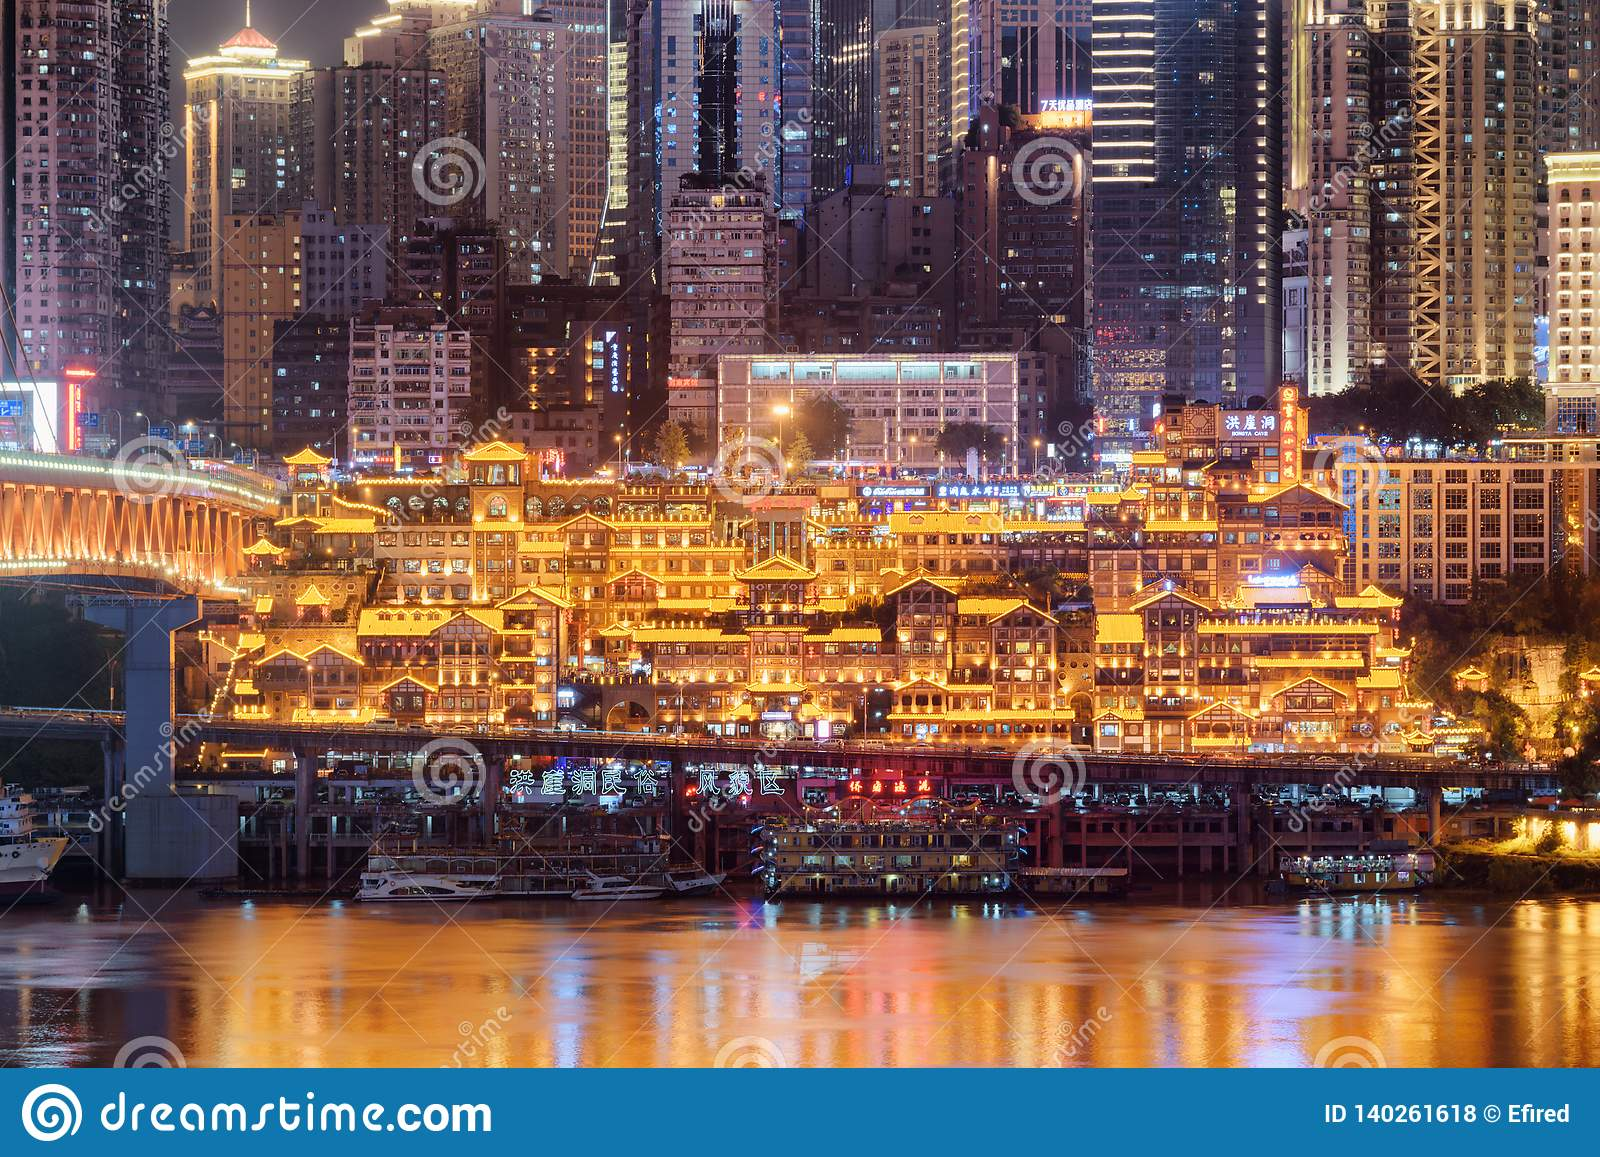 Amazing night view of the Hongya Cave on skyscrapers background